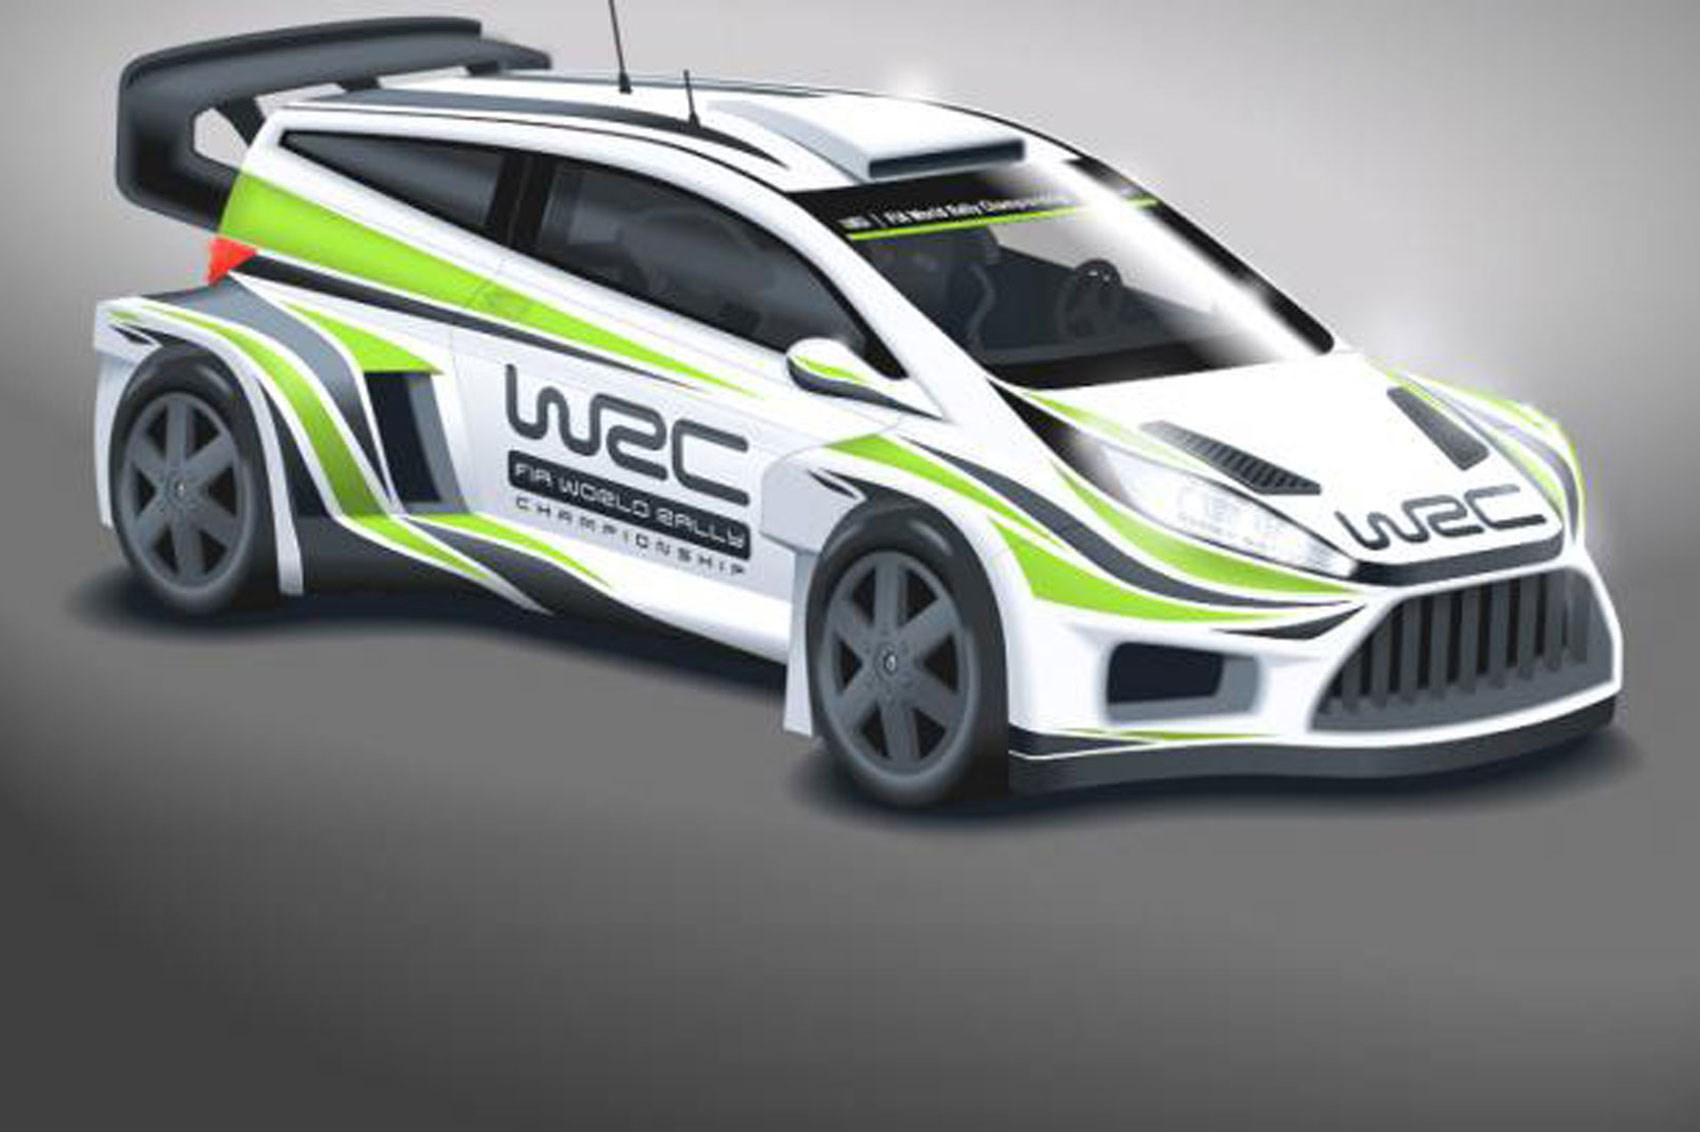 Ultrablogus  Terrific Wild New Look For Wrc Cars In  By Car Magazine With Magnificent Wrc Cars Will Get Wider Bodies Bigger Wings And More Power For  With Lovely  Dodge Dart Gt Interior Also Hsv Interior In Addition  Trans Am Interior And Audi A Interior Pictures As Well As Clean Leather Car Interior Additionally Nissan Maxima  Interior From Carmagazinecouk With Ultrablogus  Magnificent Wild New Look For Wrc Cars In  By Car Magazine With Lovely Wrc Cars Will Get Wider Bodies Bigger Wings And More Power For  And Terrific  Dodge Dart Gt Interior Also Hsv Interior In Addition  Trans Am Interior From Carmagazinecouk